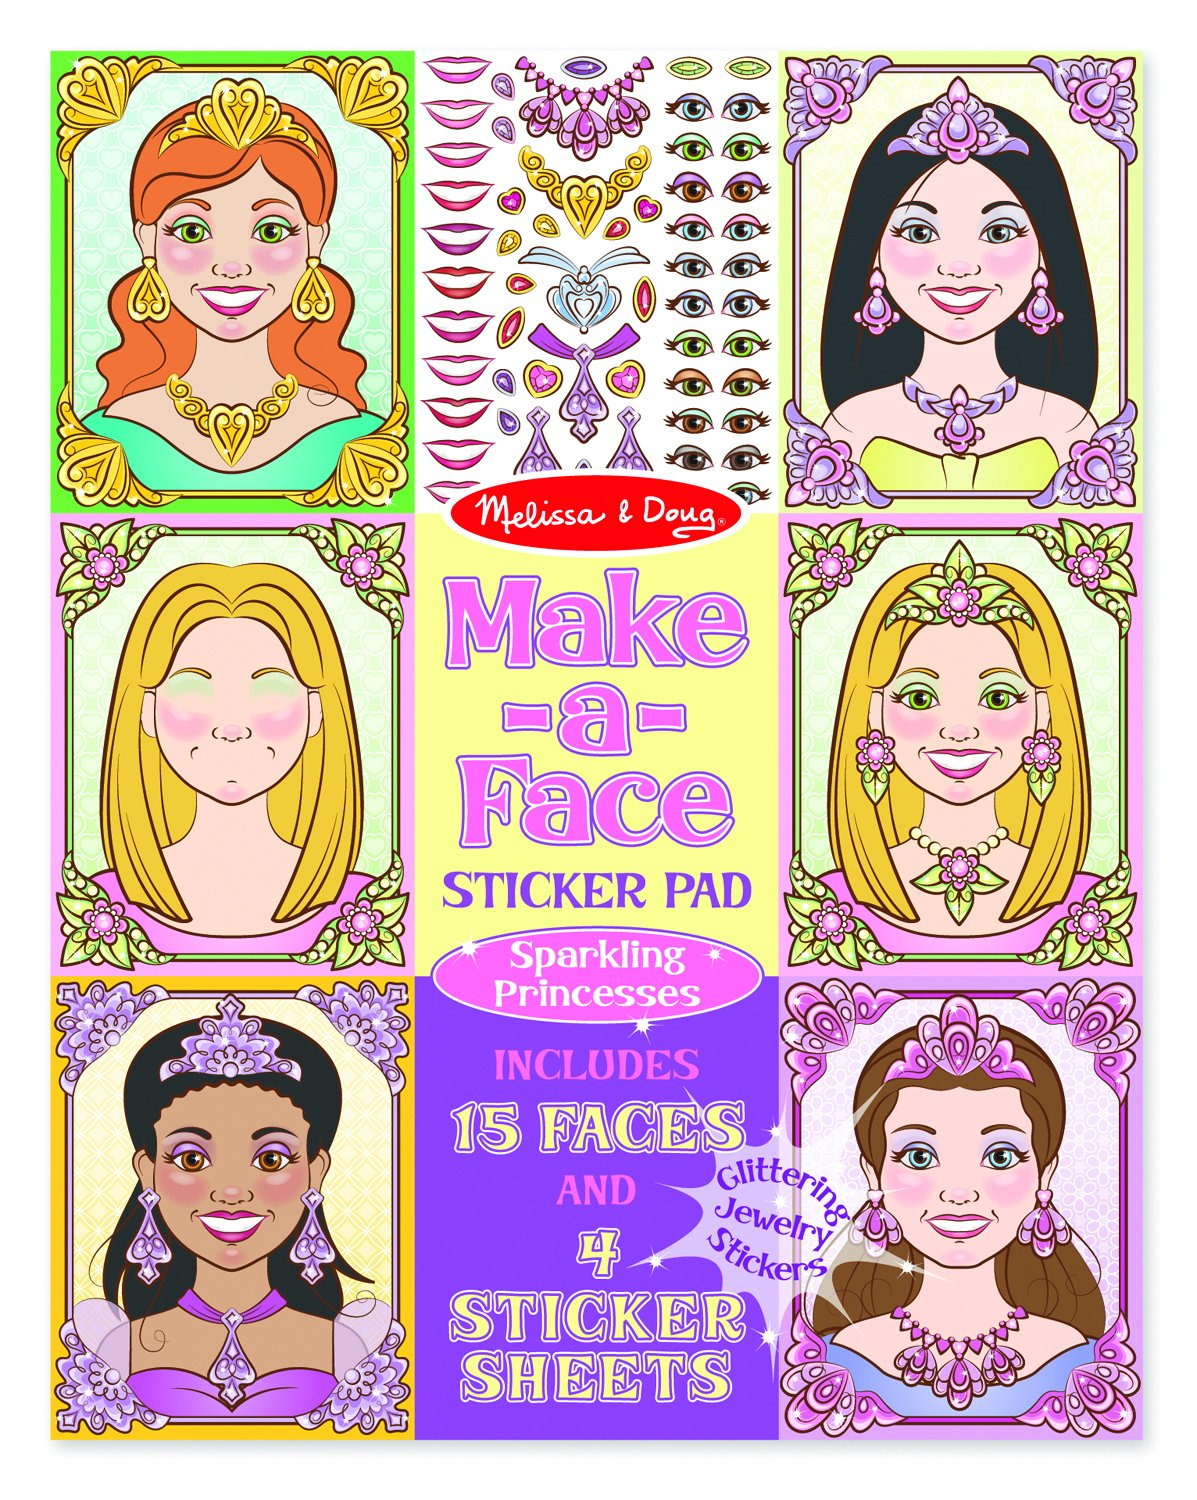 Melissa Doug Make a Face Sticker Pad Sparkling Princesses 15 Faces 4 Sticker Sheets